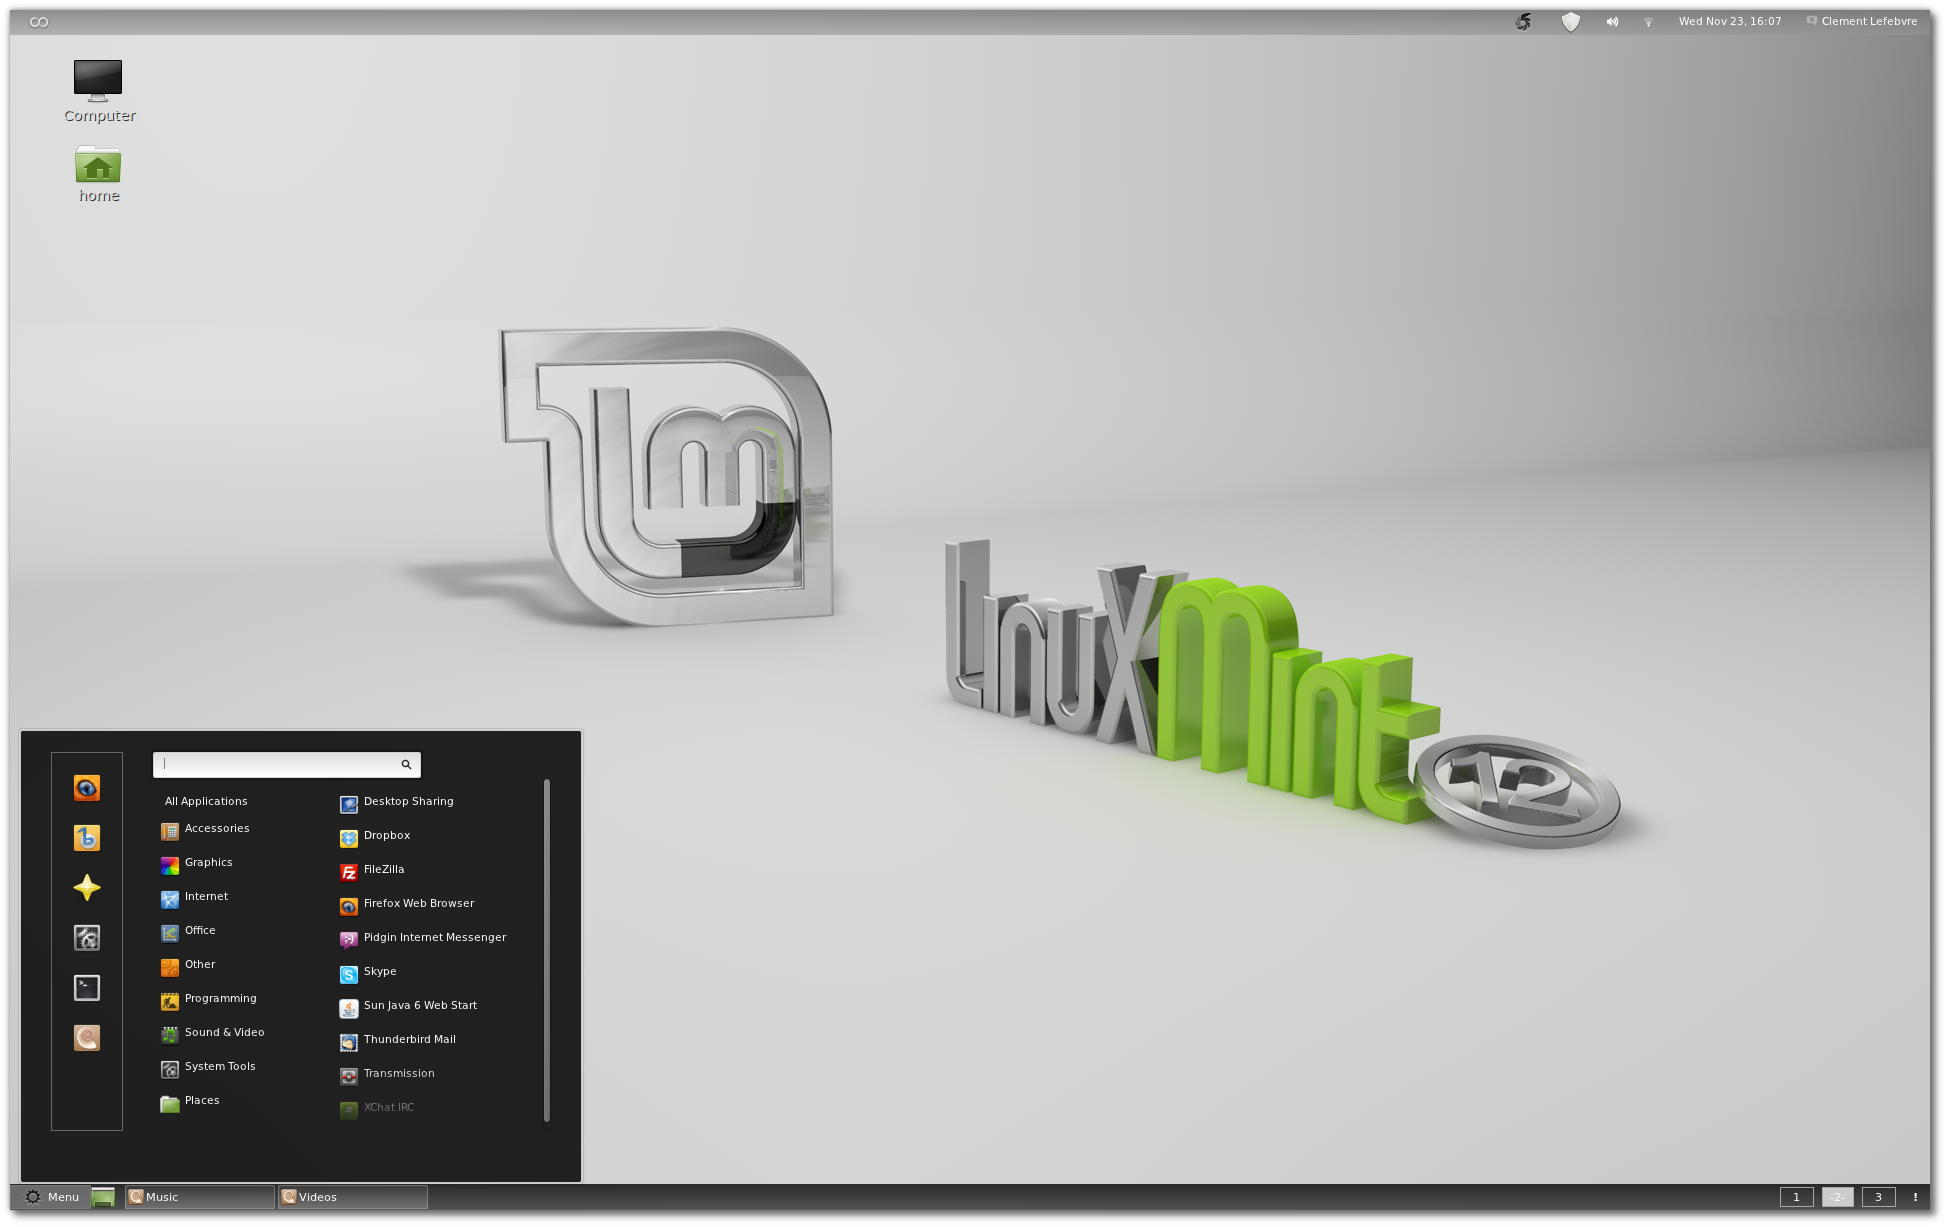 new features in linux mint 12 linux mint. Black Bedroom Furniture Sets. Home Design Ideas